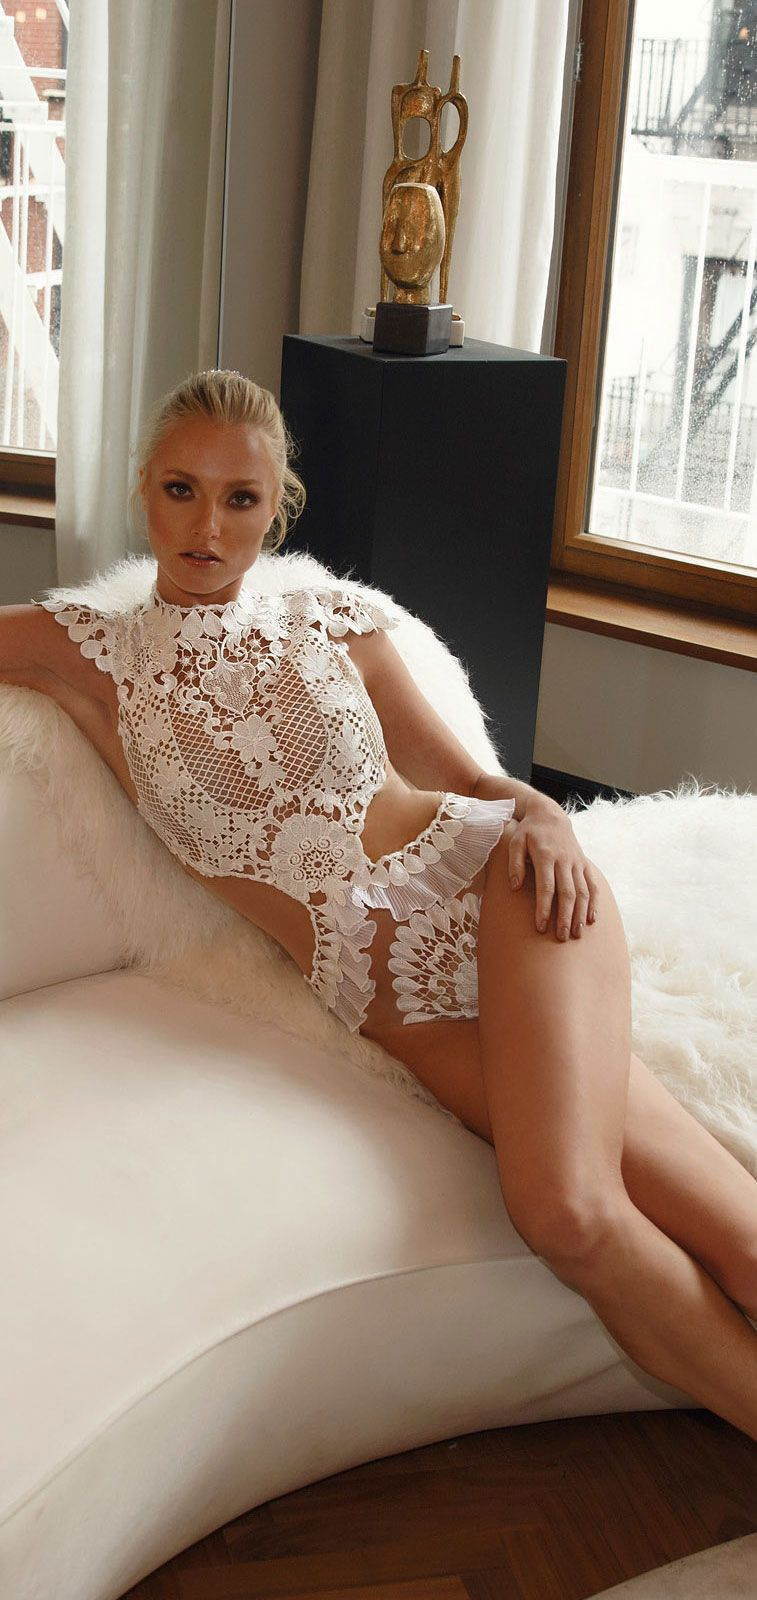 Lior Charchy NYC 2017 cap sleeves bridal fully embellishment body suit bridal lingerie lior charchy bridal #wedding #weddings #bride #bridaldress #weddinggown #bohemianweddingdress #boho